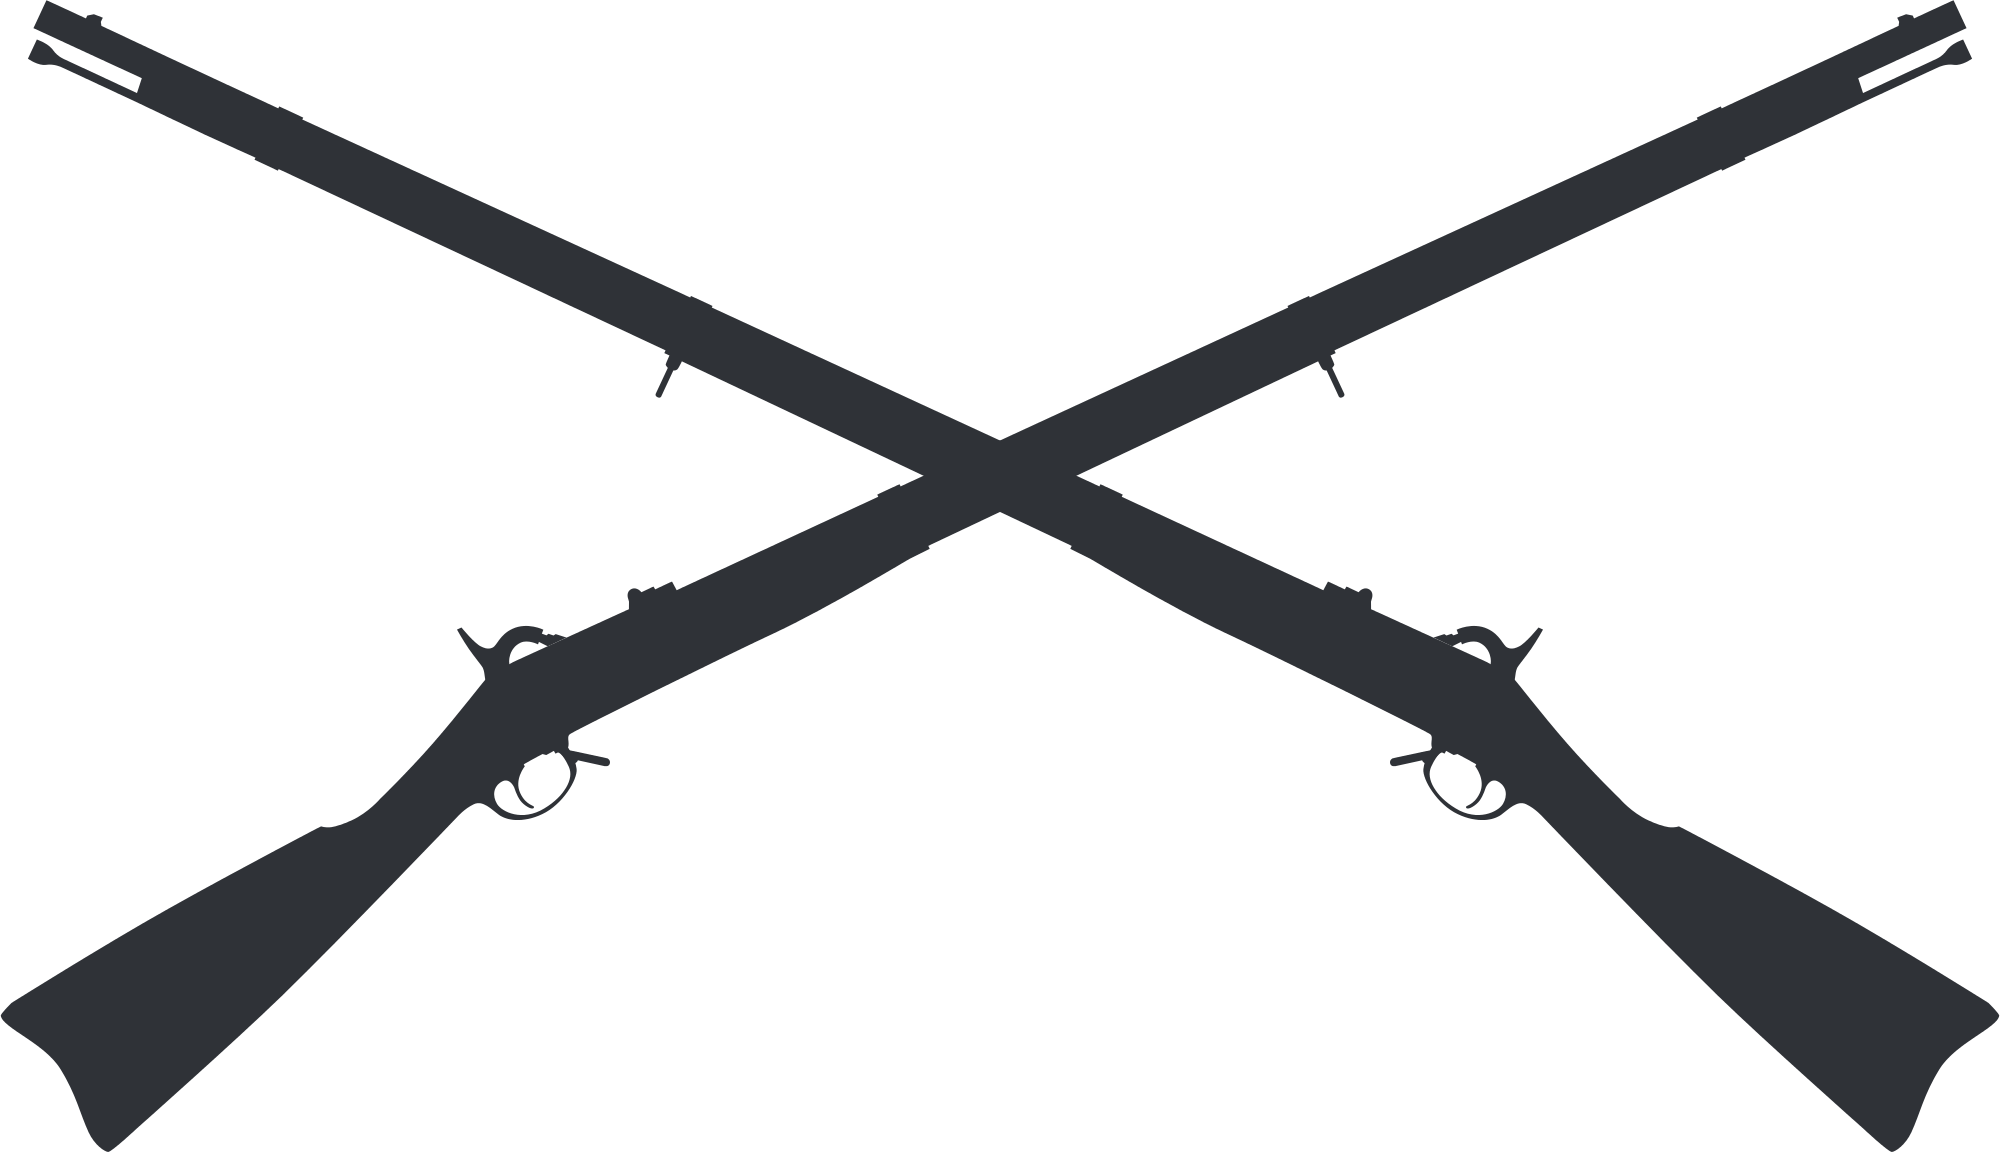 Cross rifles clipart vector free stock File:1861 Springfield Crossed Muskets.svg - Wikimedia Commons vector free stock